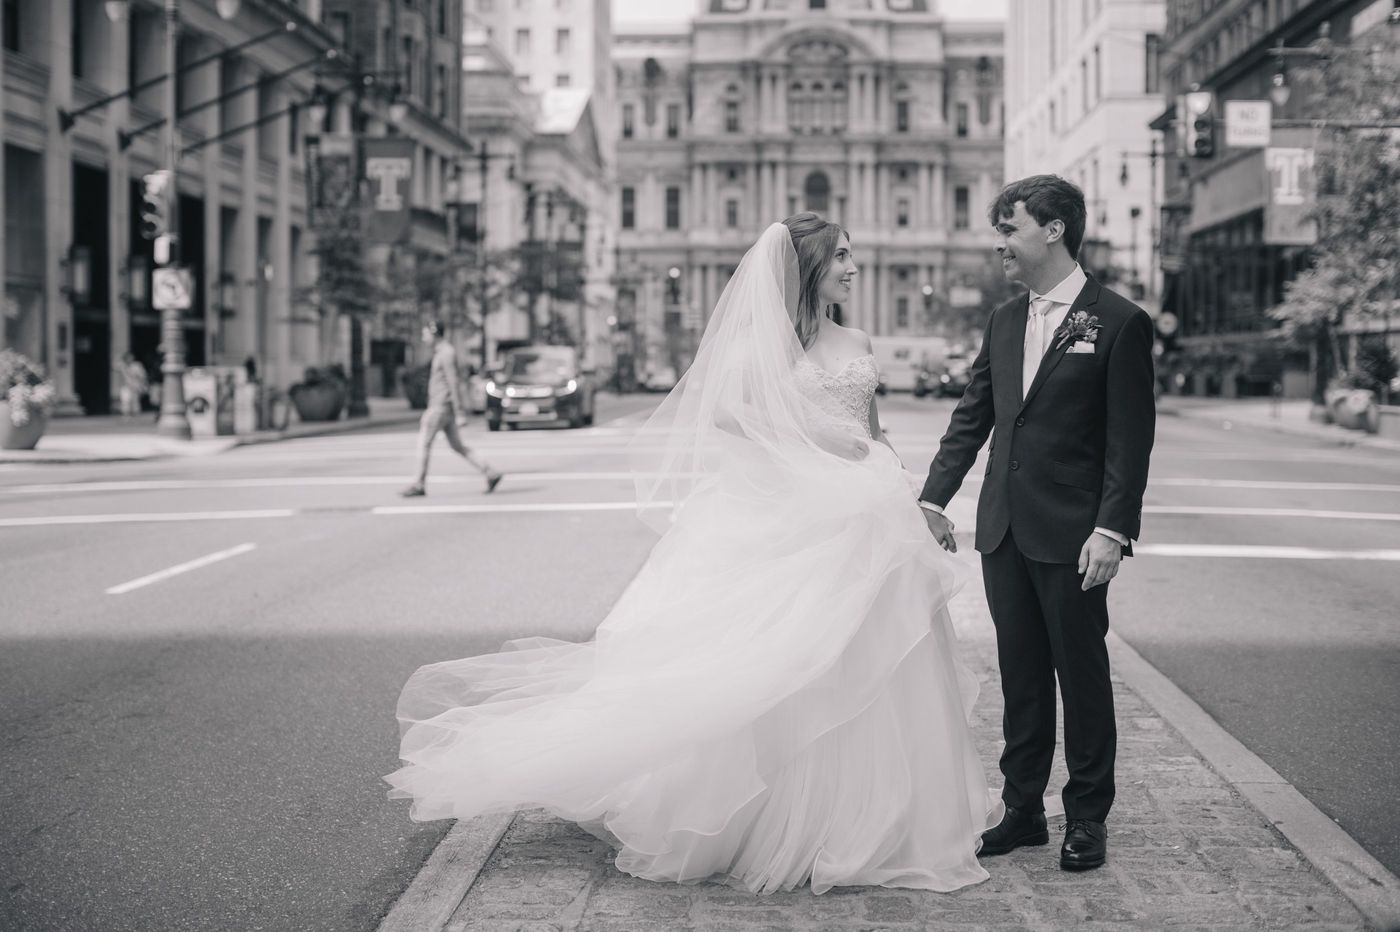 Philadelphia Weddings: Jill Hanley and David Owen